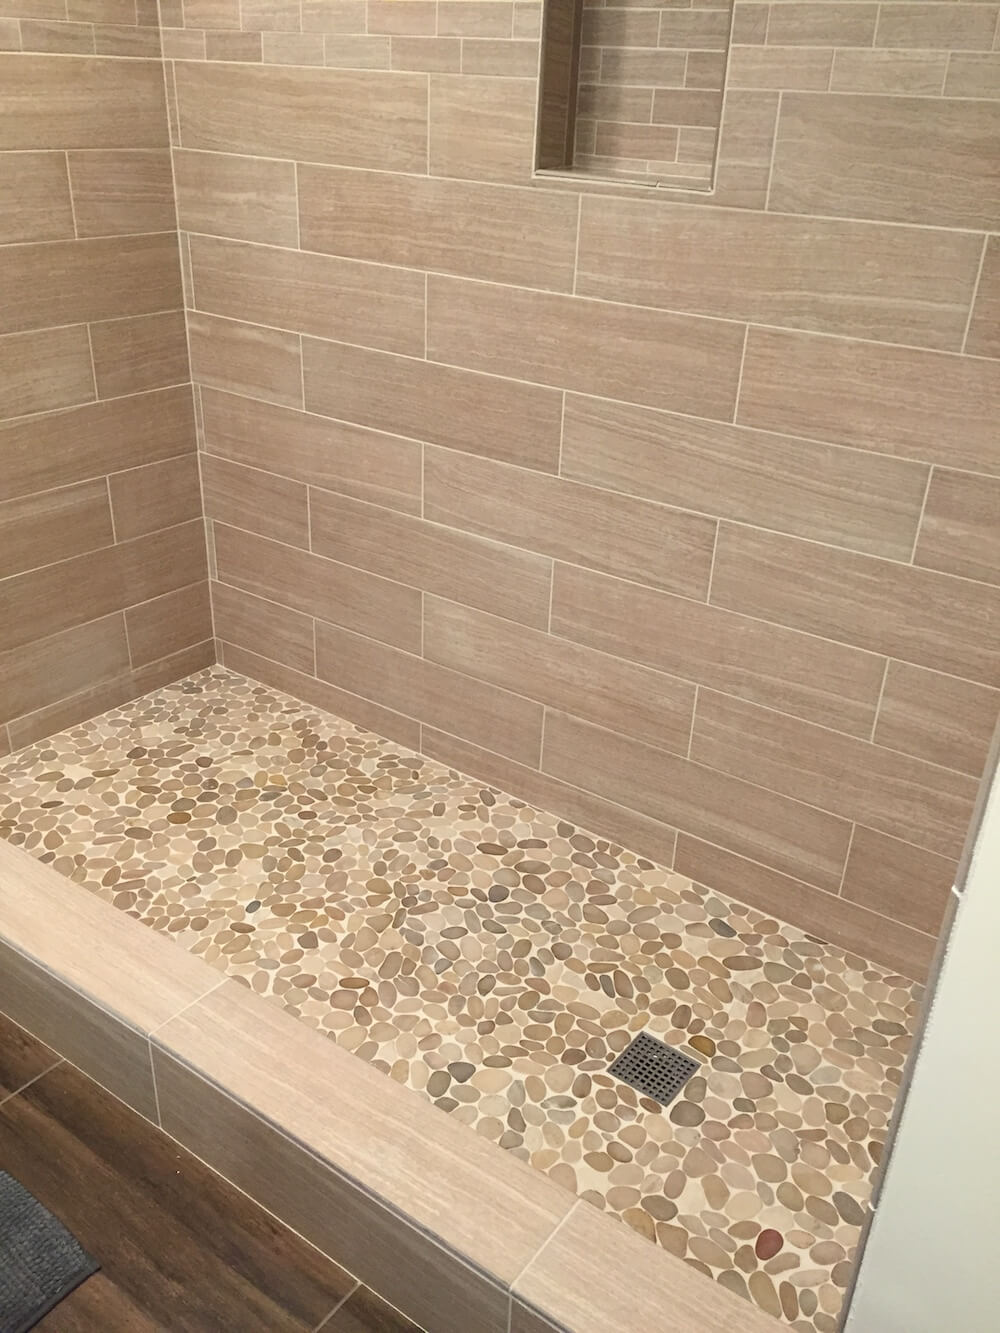 Cost To Tile A Shower How Much To Tile A Shower - Bathtub removal and installation cost